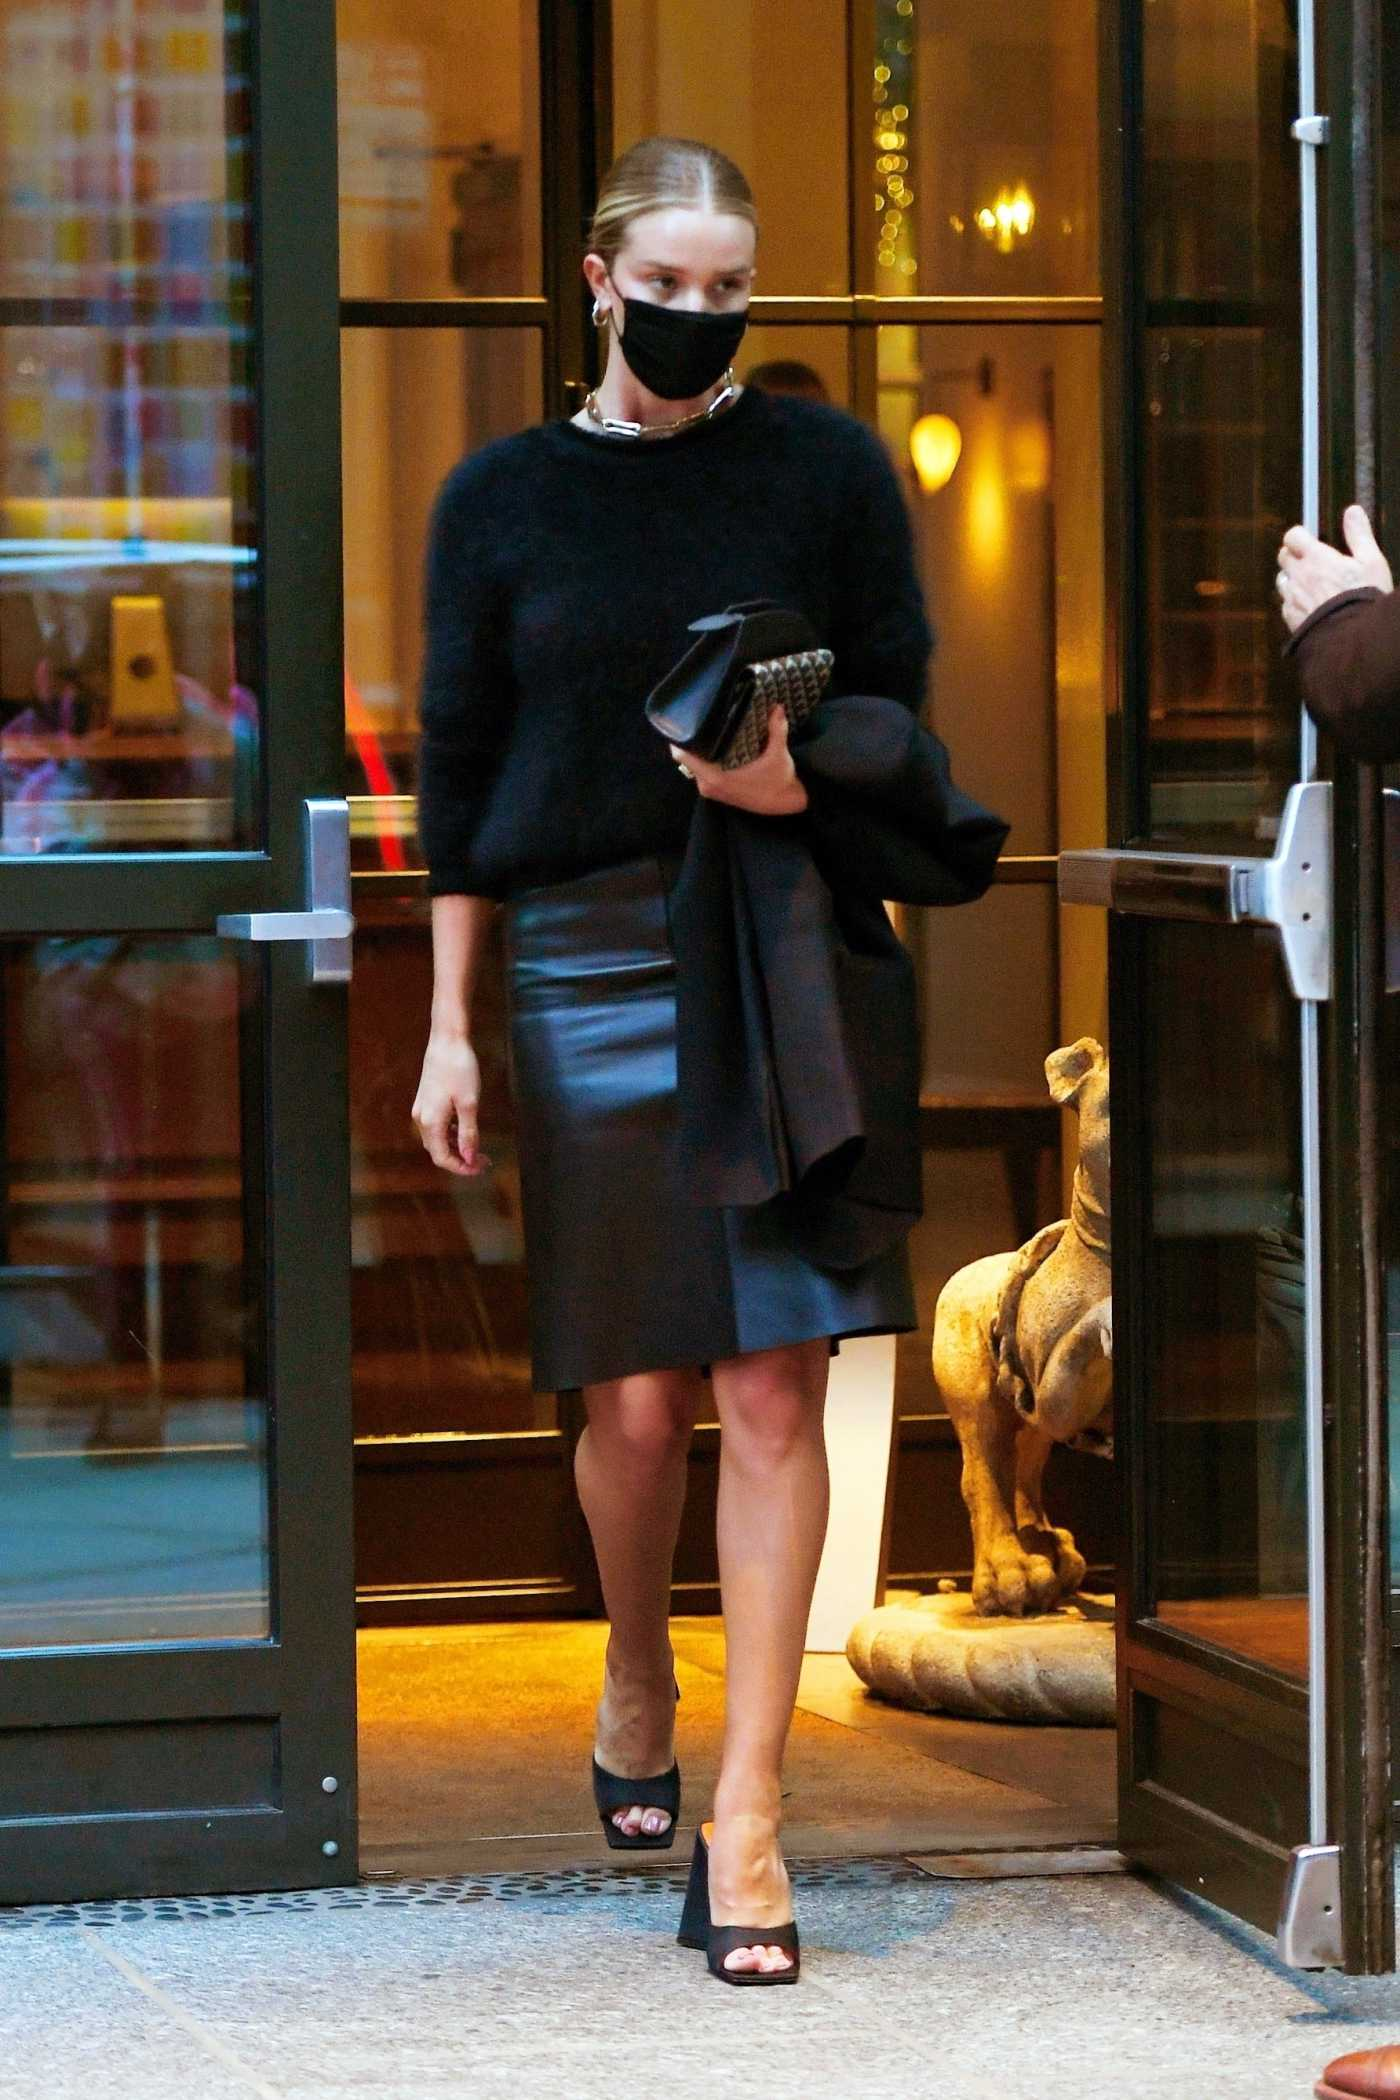 Rosie Huntington-Whiteley in a Black Leather Skirt Was Seen Out in New York 04/13/2021